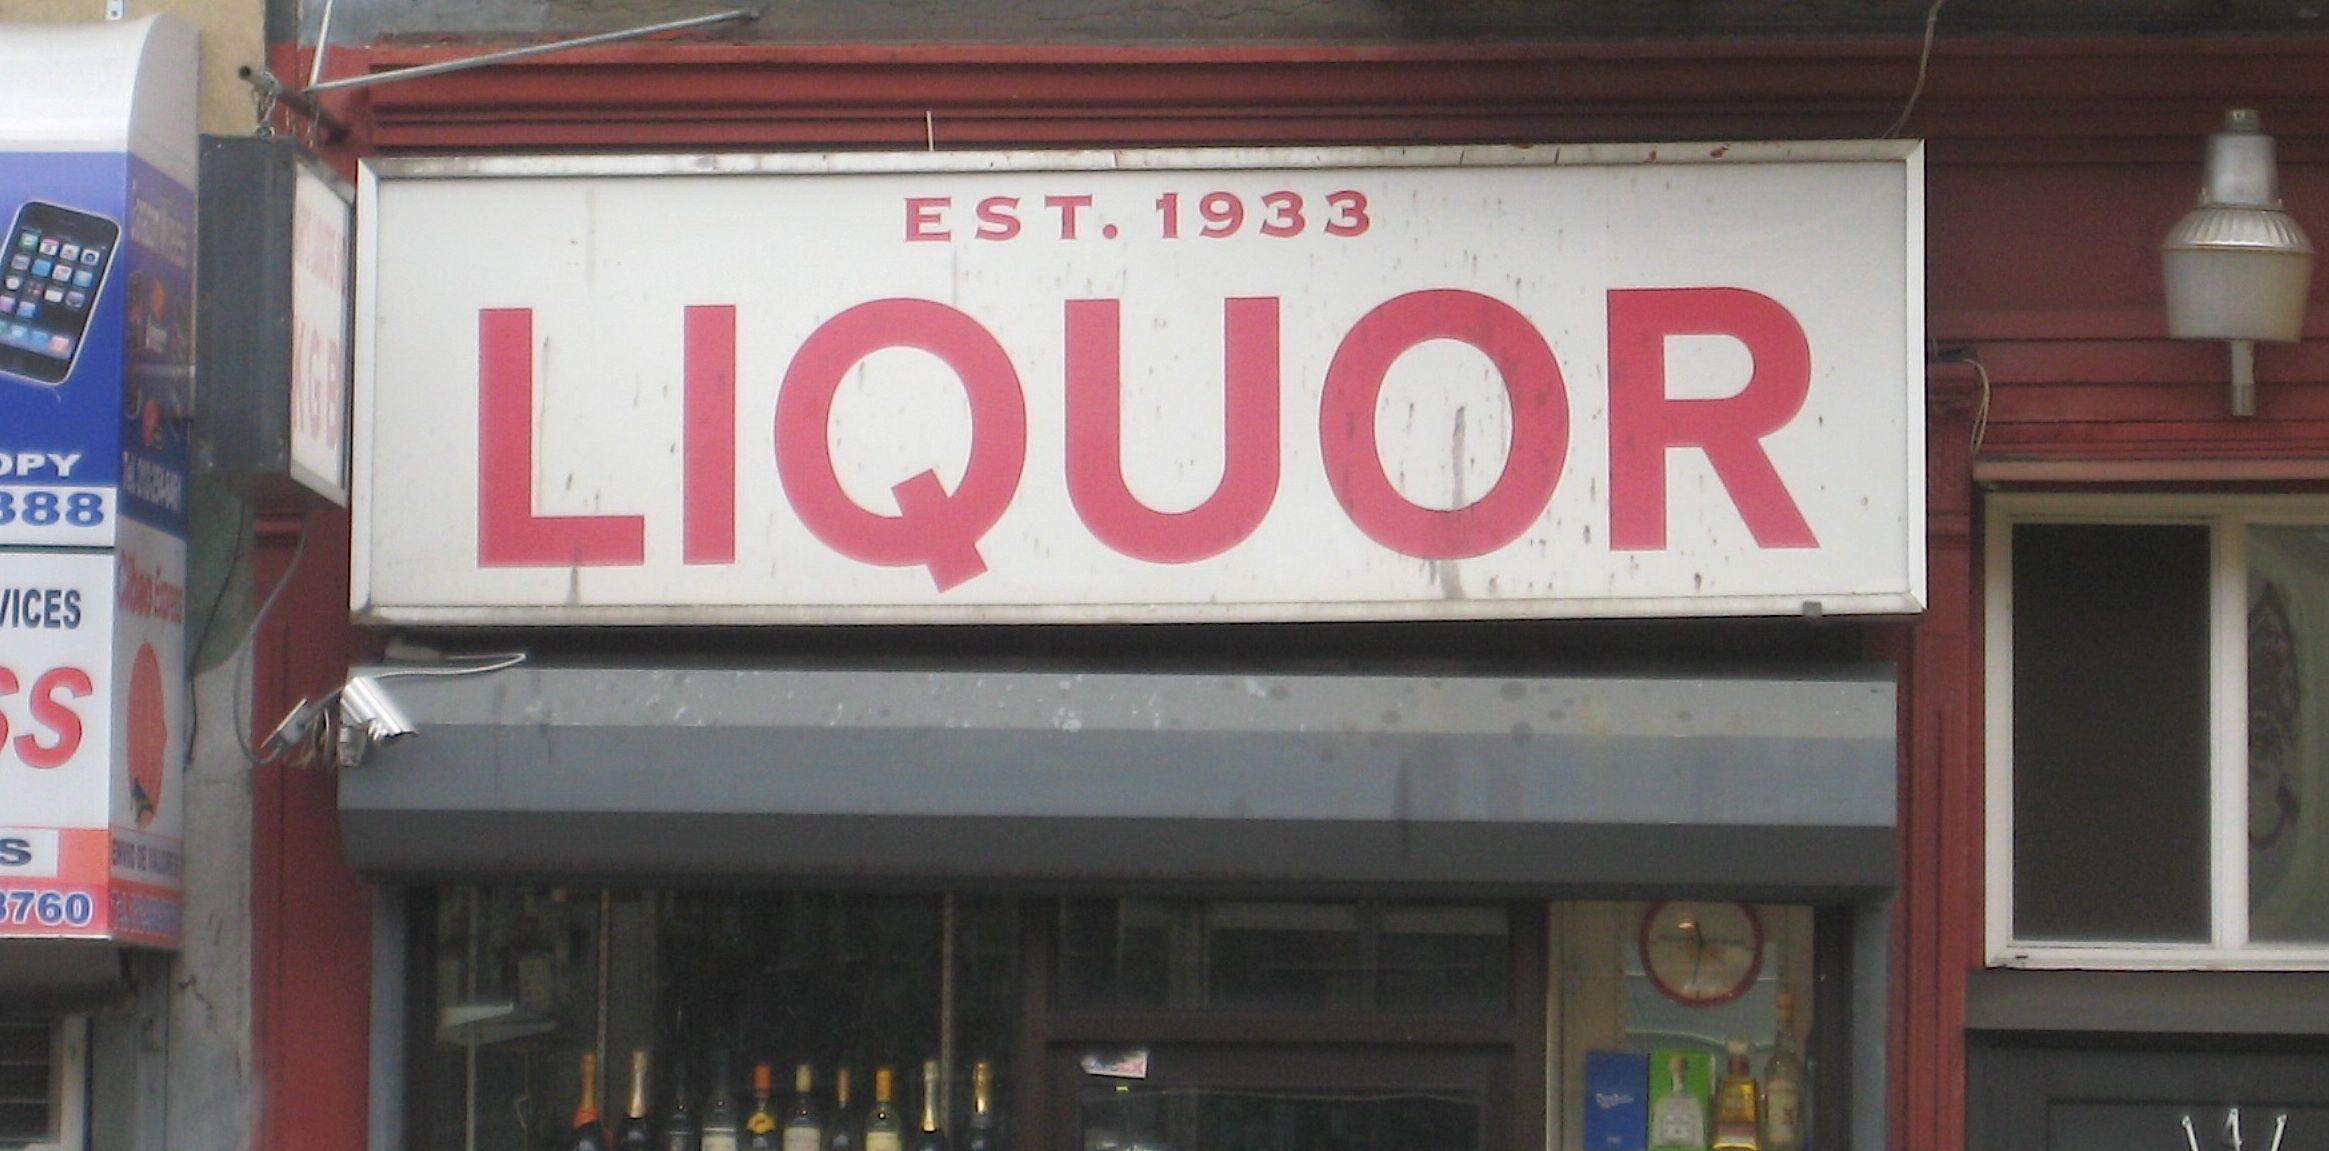 New Yorks coolest vintage liquor store signs in 2020